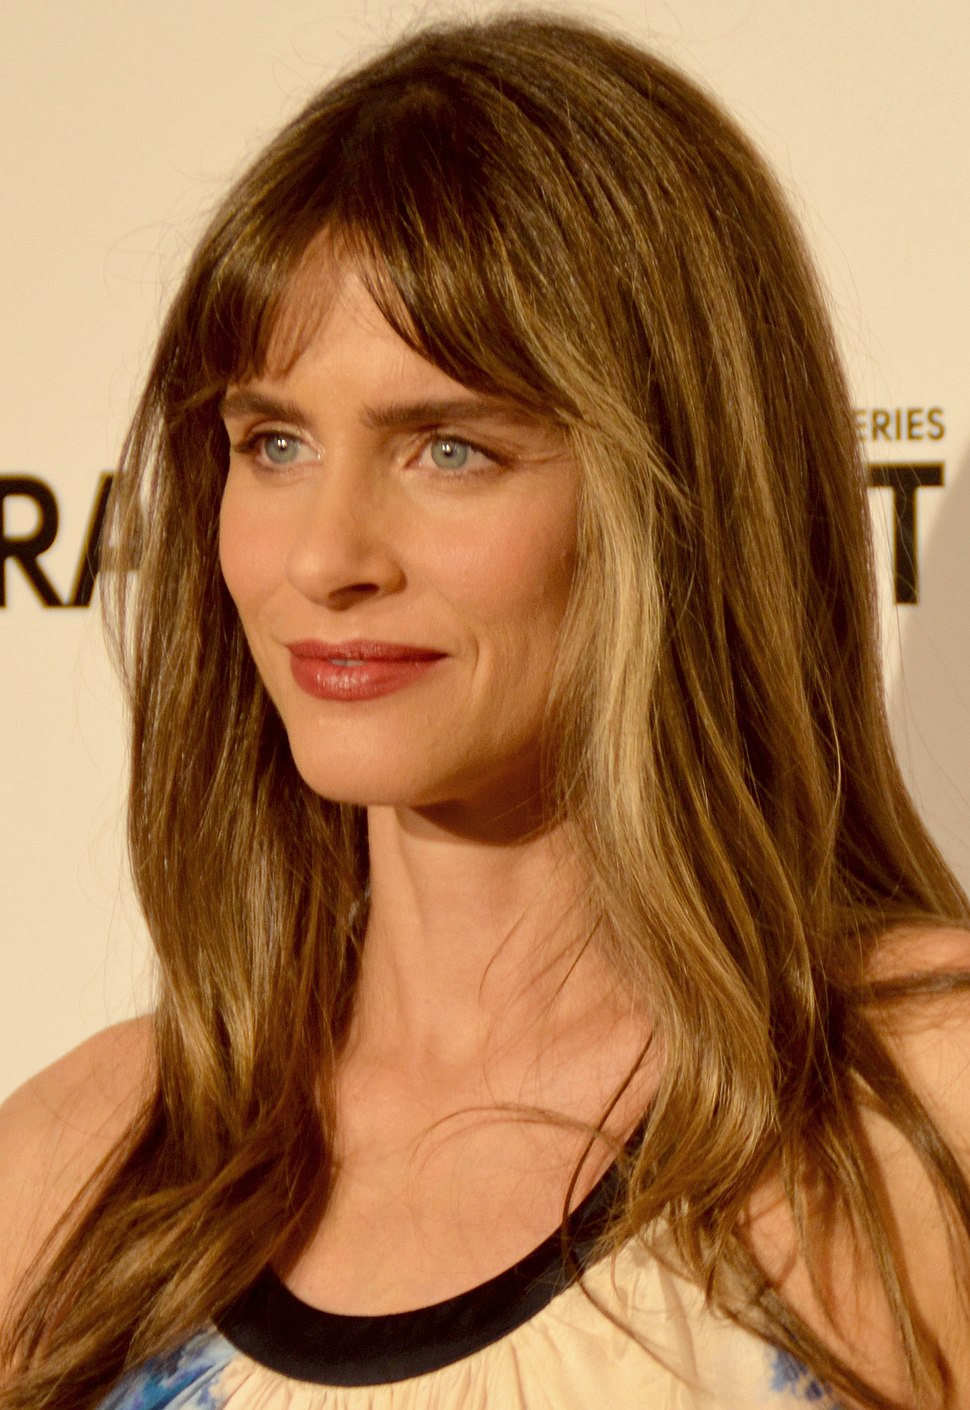 Amanda Peet September 2014 (cropped)